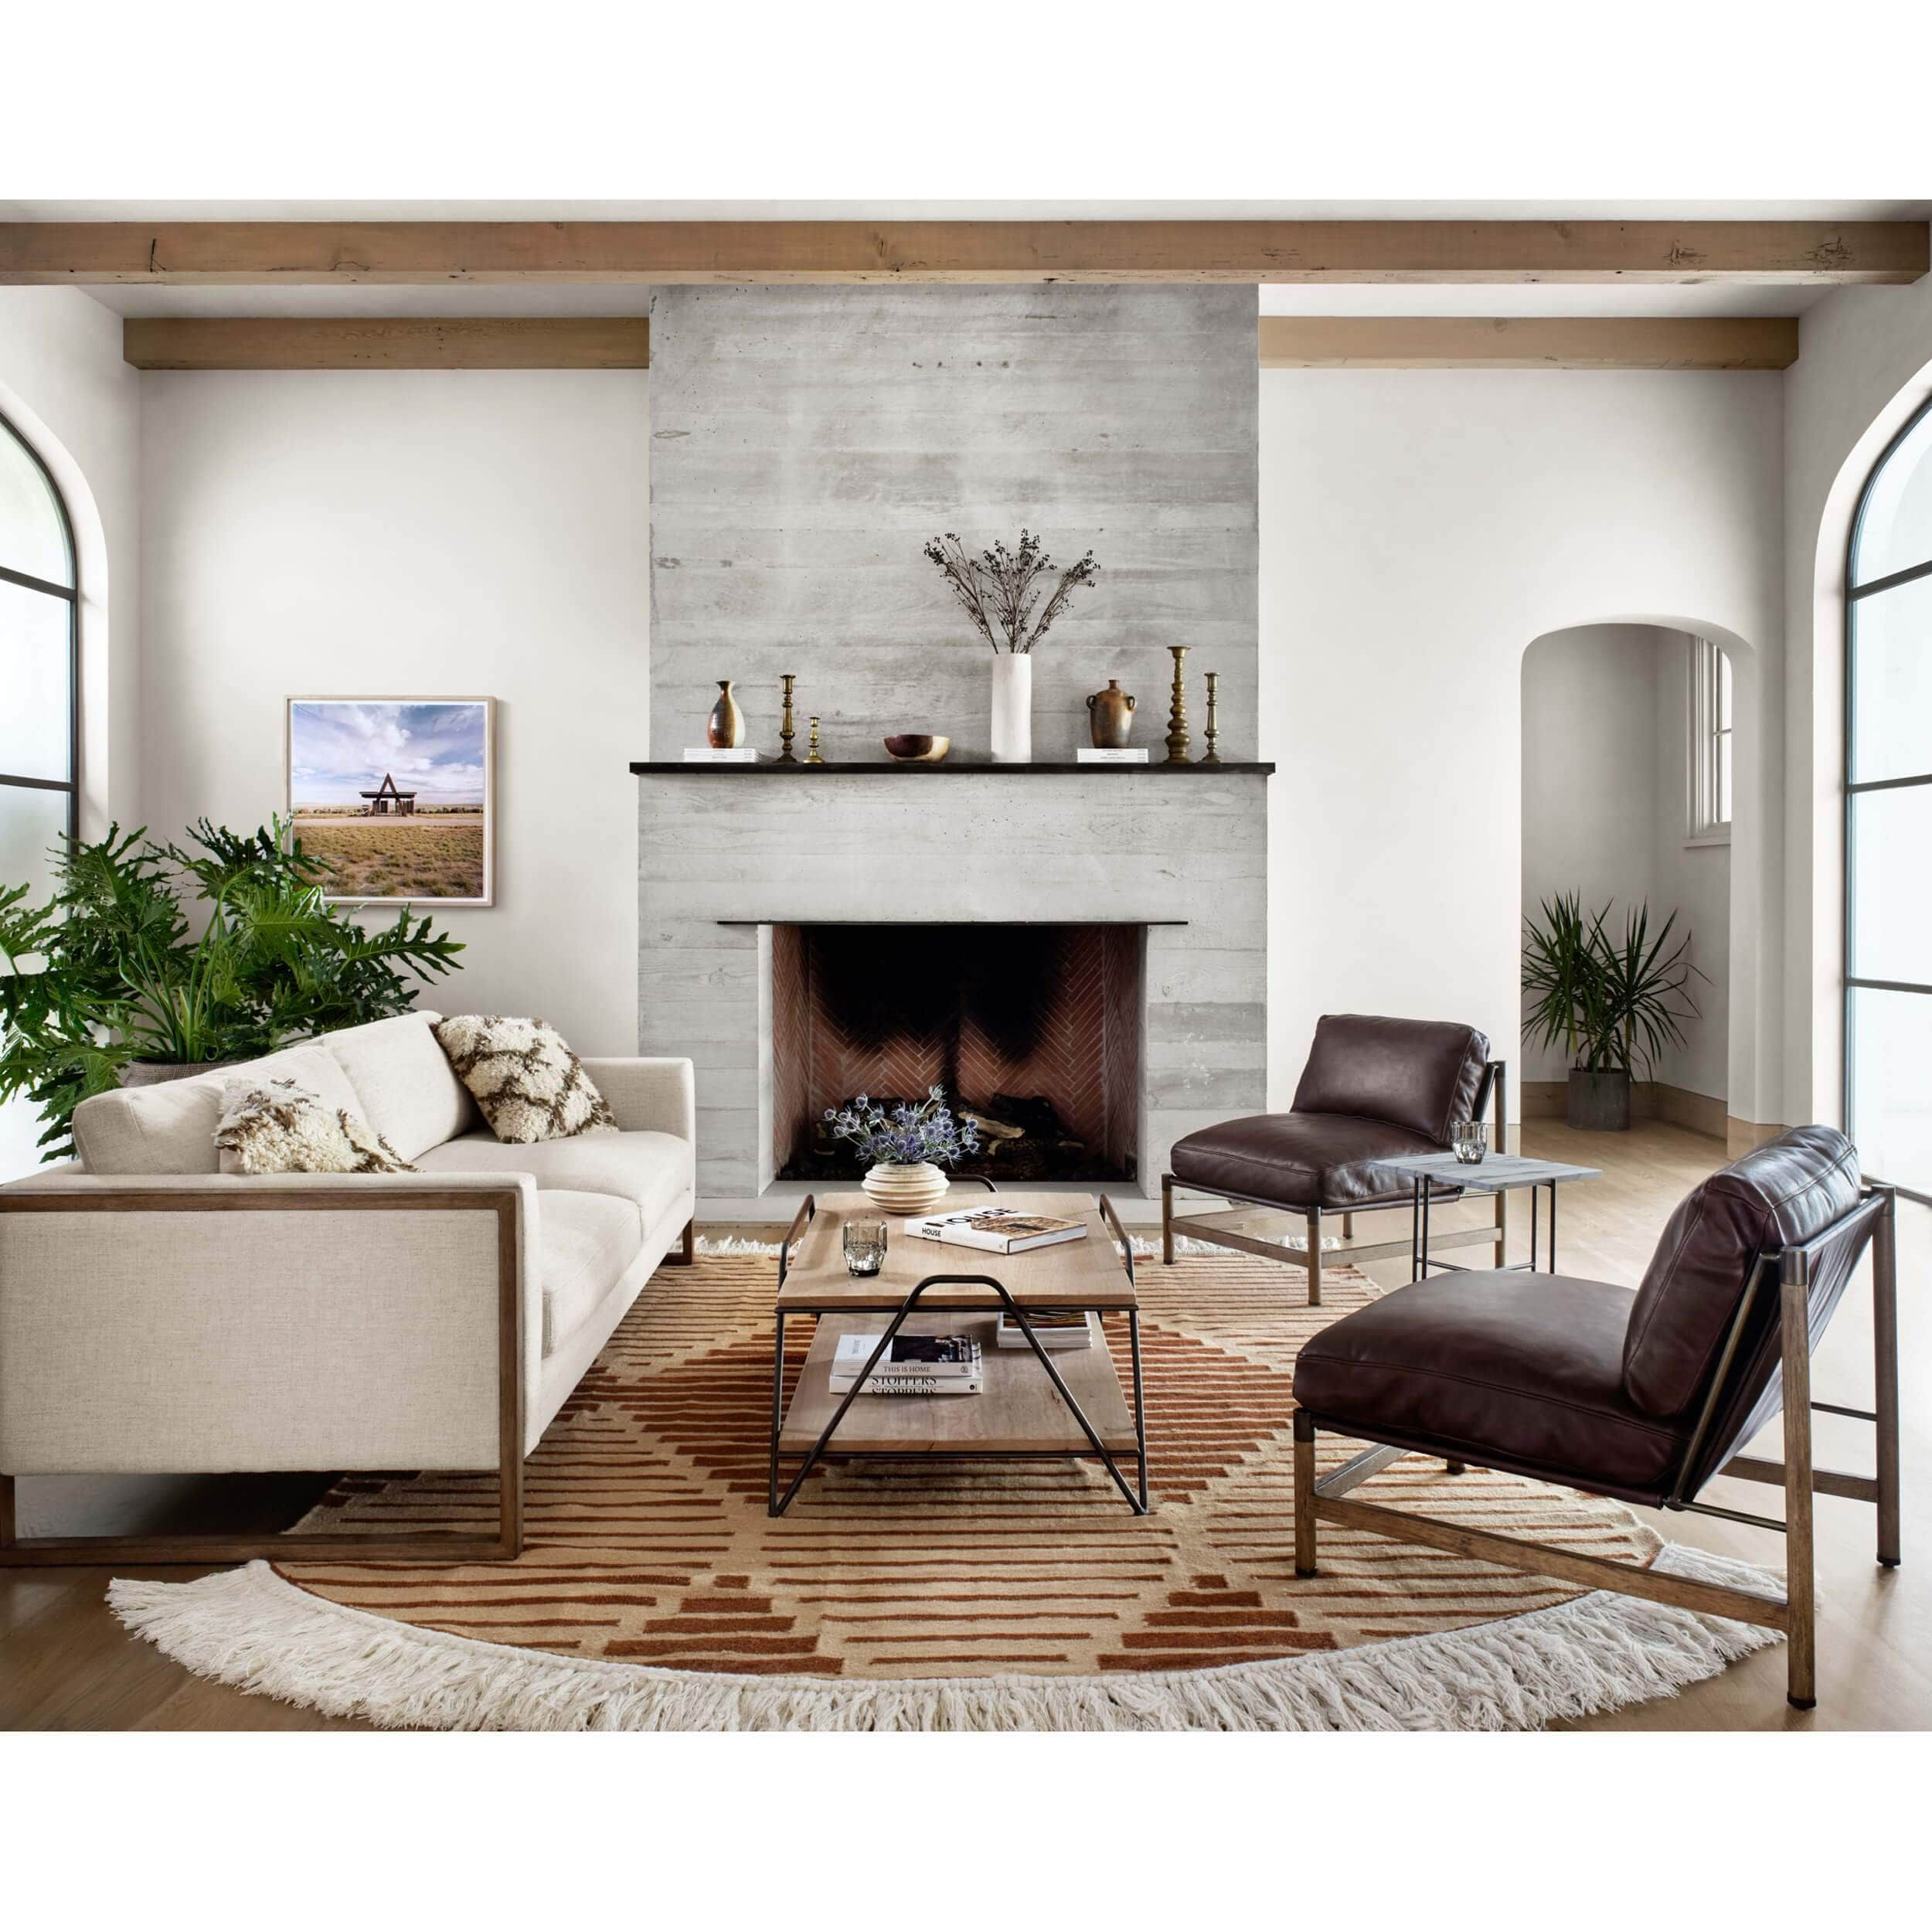 Garland Coffee Table In 2021 Iron Frame Coffee Table Furniture Sale Home [ 2500 x 2500 Pixel ]